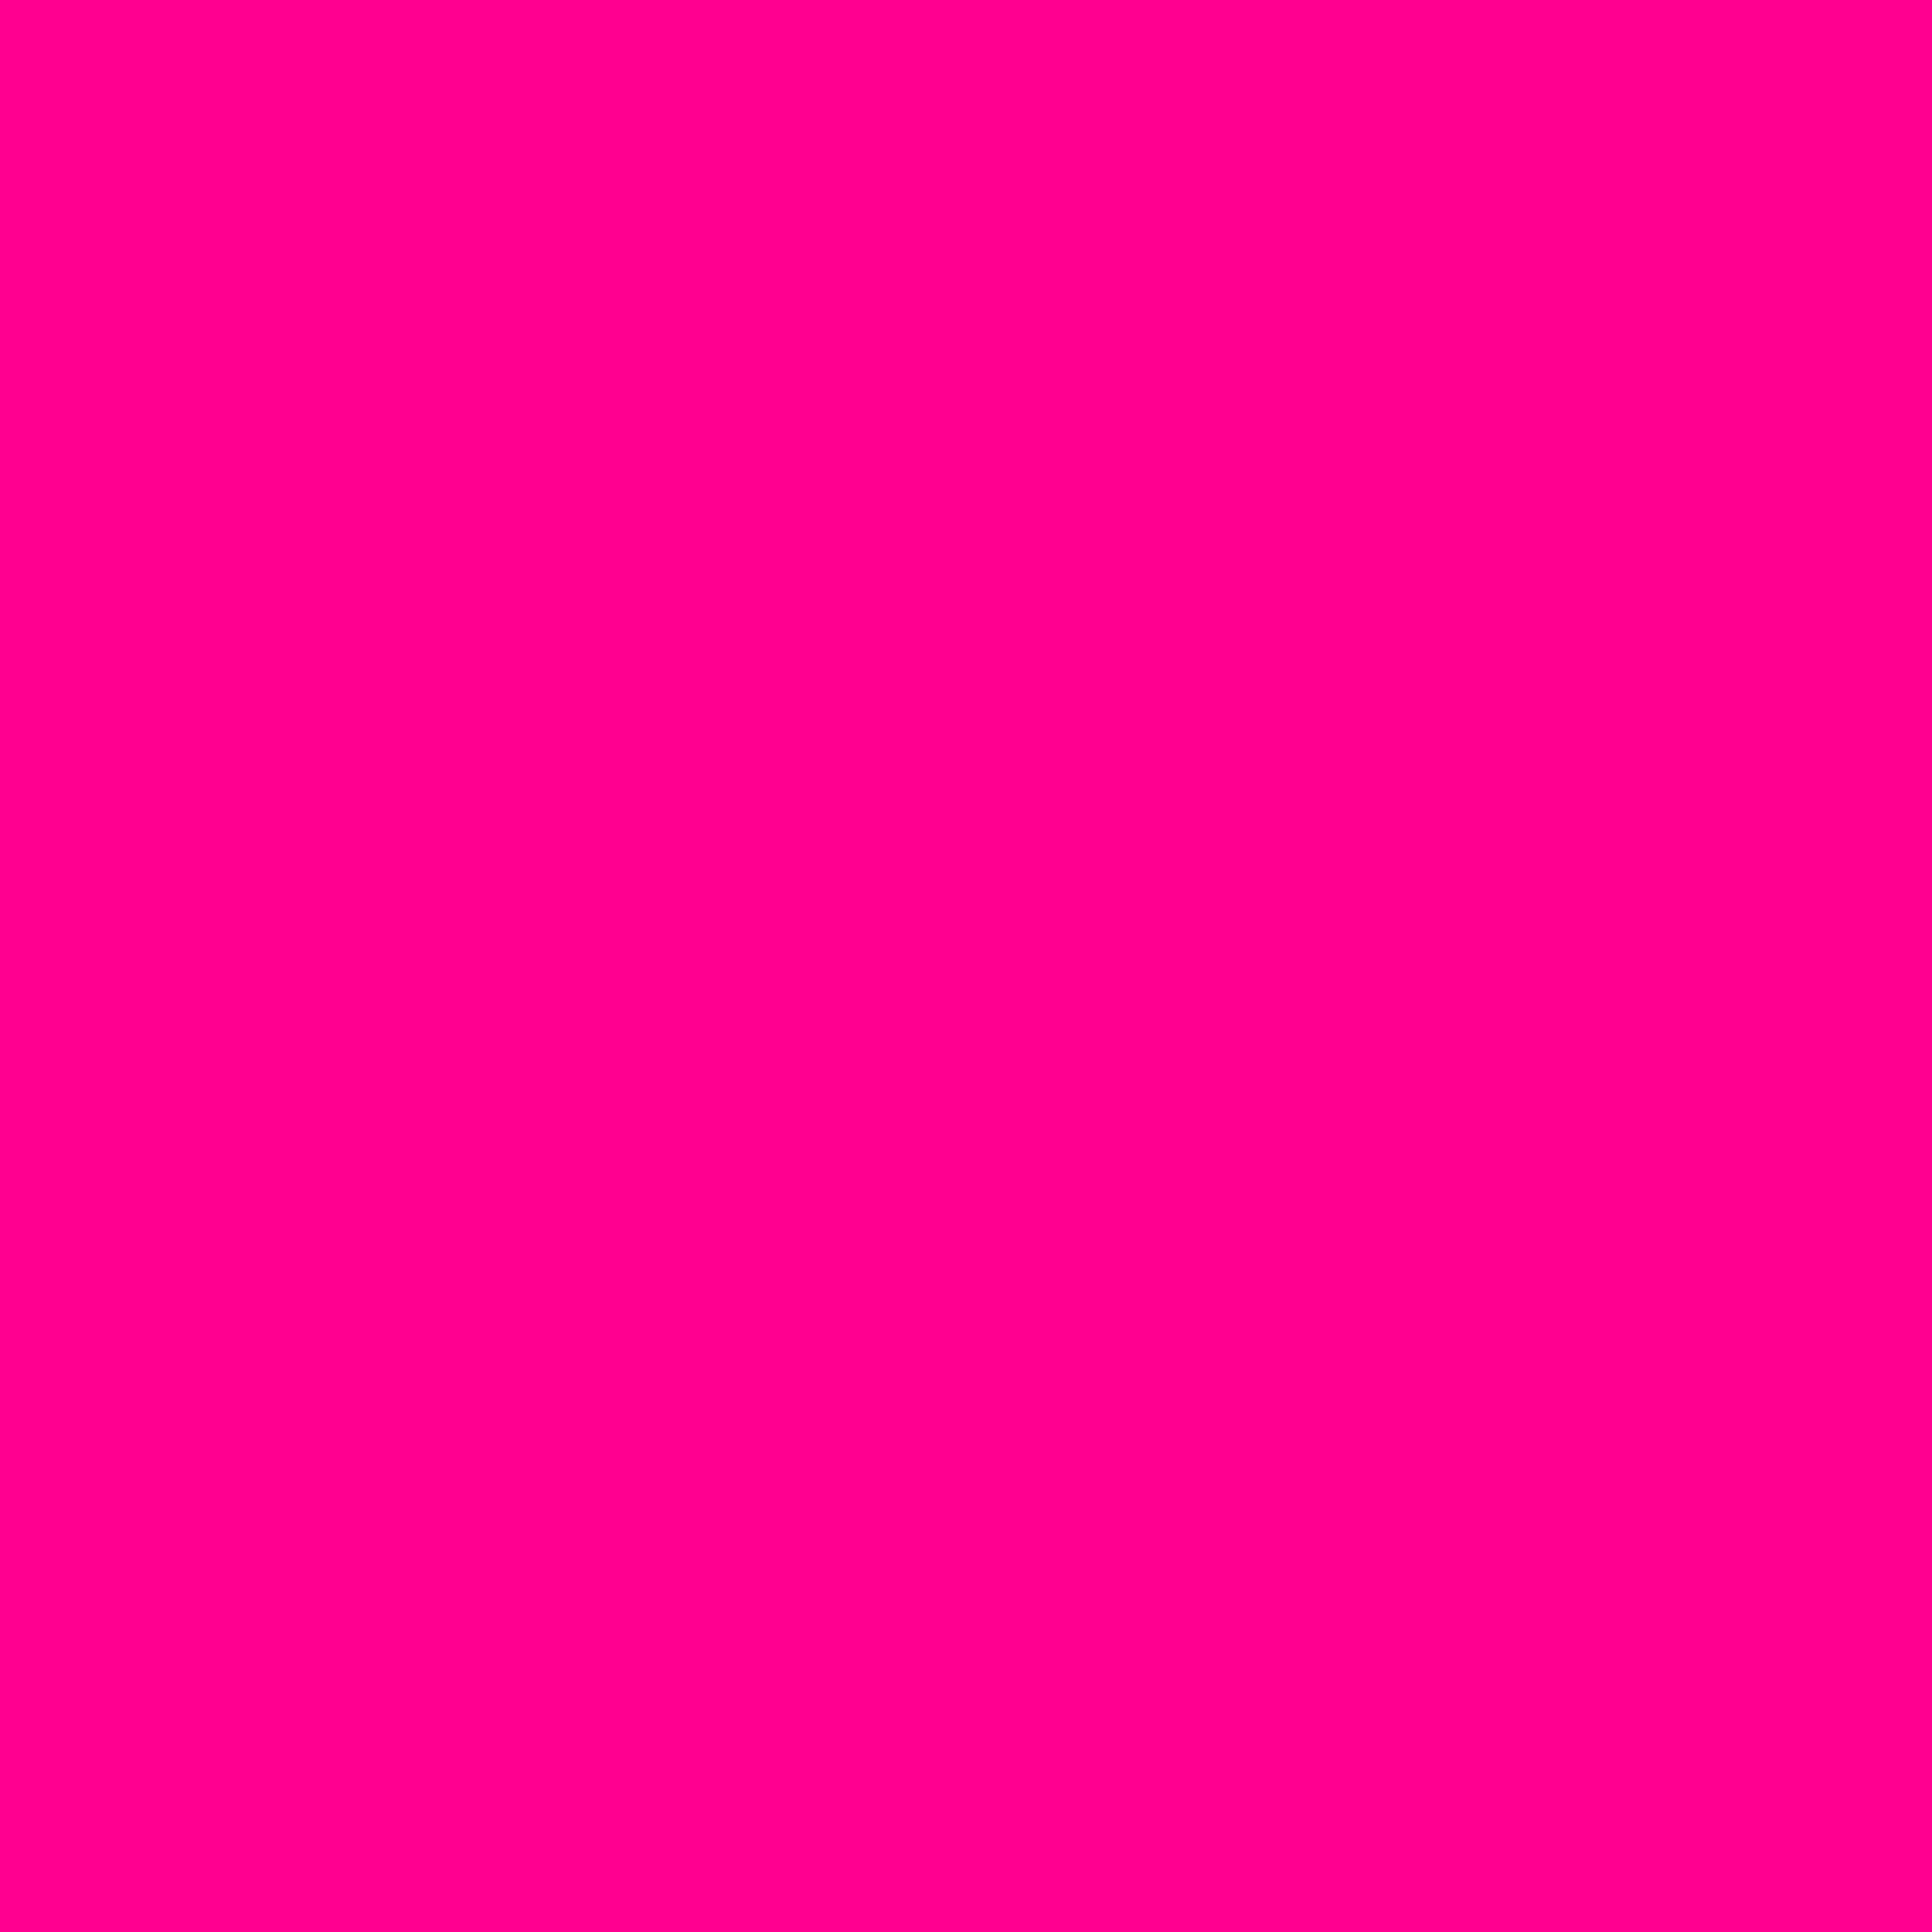 2732x2732 Magenta Process Solid Color Background